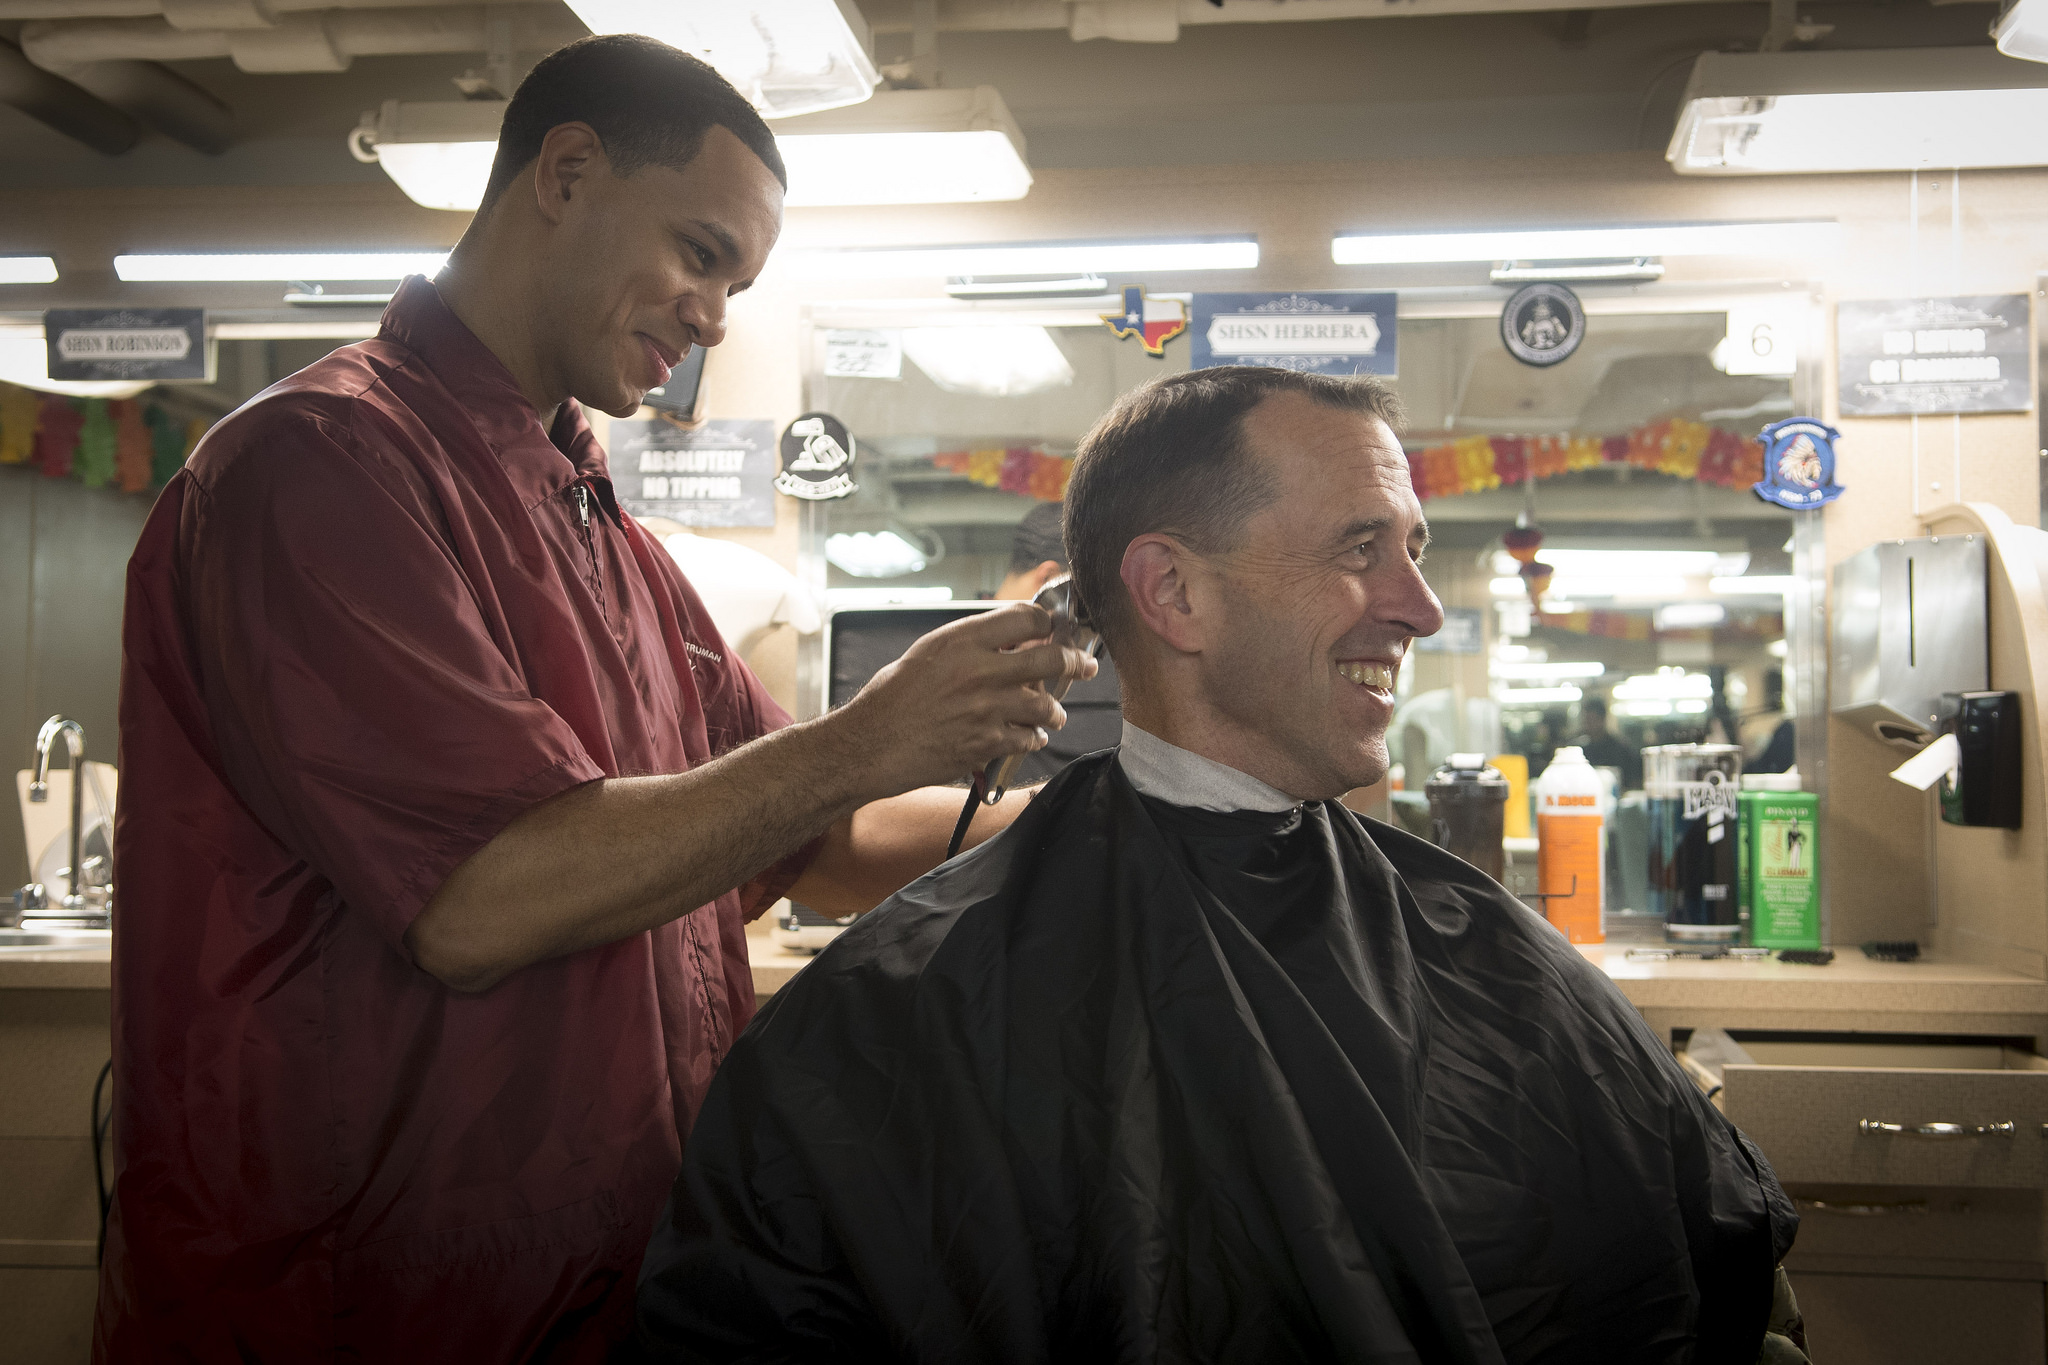 Ship's Serviceman 3rd Class Pedro Solis-Perez gives a haircut to Chief of Naval Operations Adm. John Richardson aboard the Nimitz-class aircraft carrier USS Harry S. Truman (CVN 75) on Nov. 23, 2018, in the Mediterranean Sea. Richardson and Master Chief Petty Officer of the Navy Russell Smith visited the ship to collect feedback and express their gratitude for the crew's warfighting readiness. (MC1 Sarah Villegas/Navy)